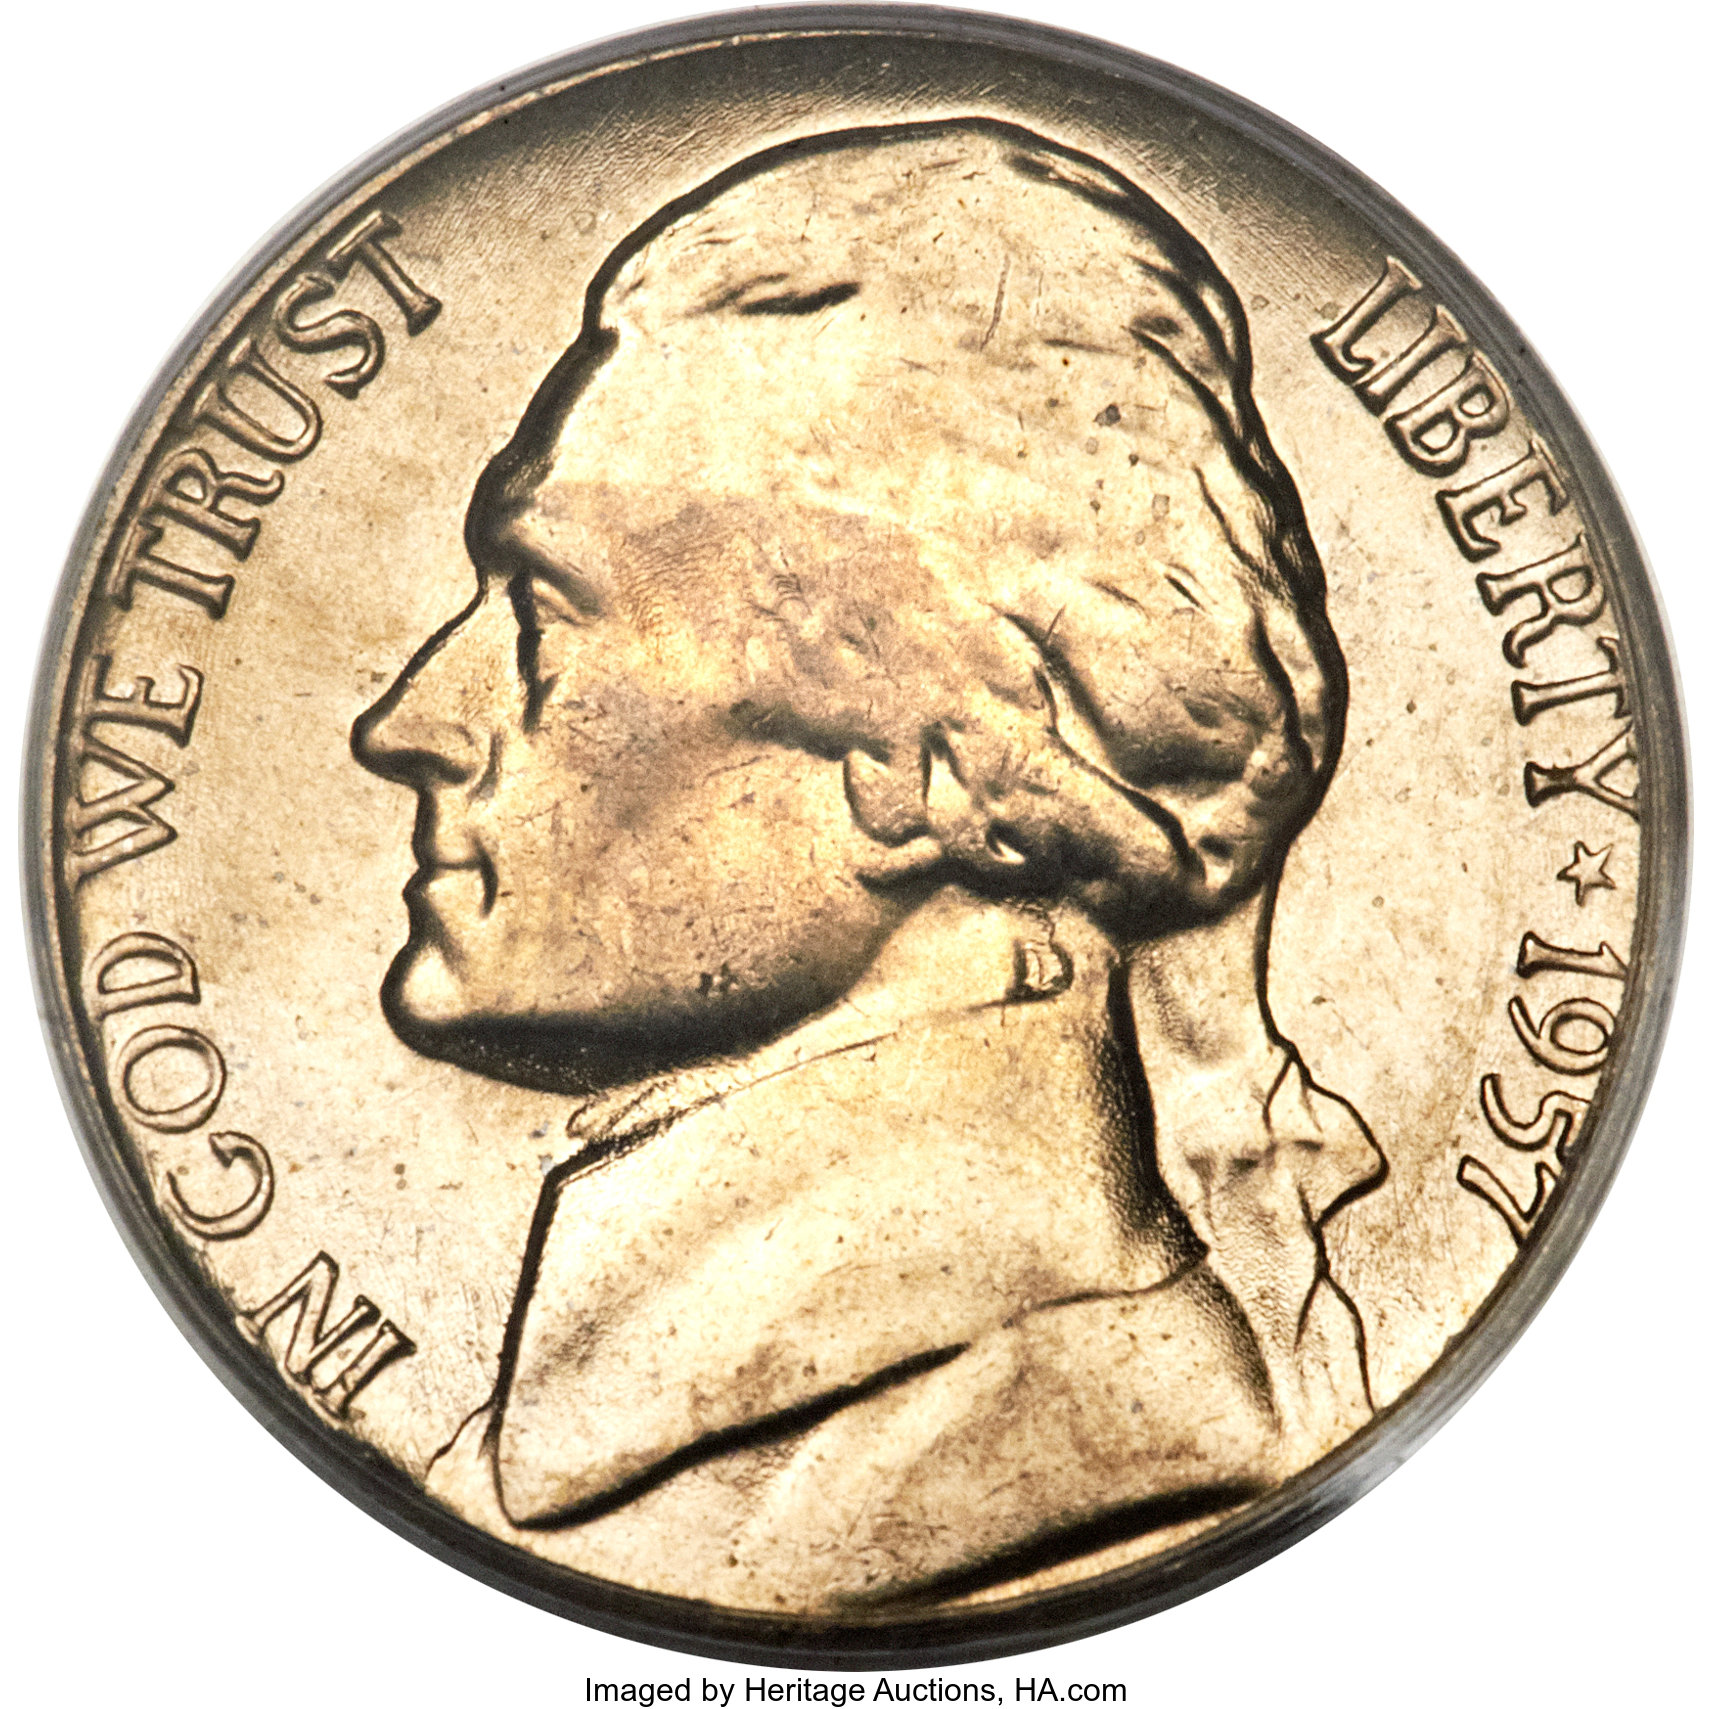 1953-P Jefferson Nickel Nice Uncirculated Coin Priced to MOVE and Shipped FREE